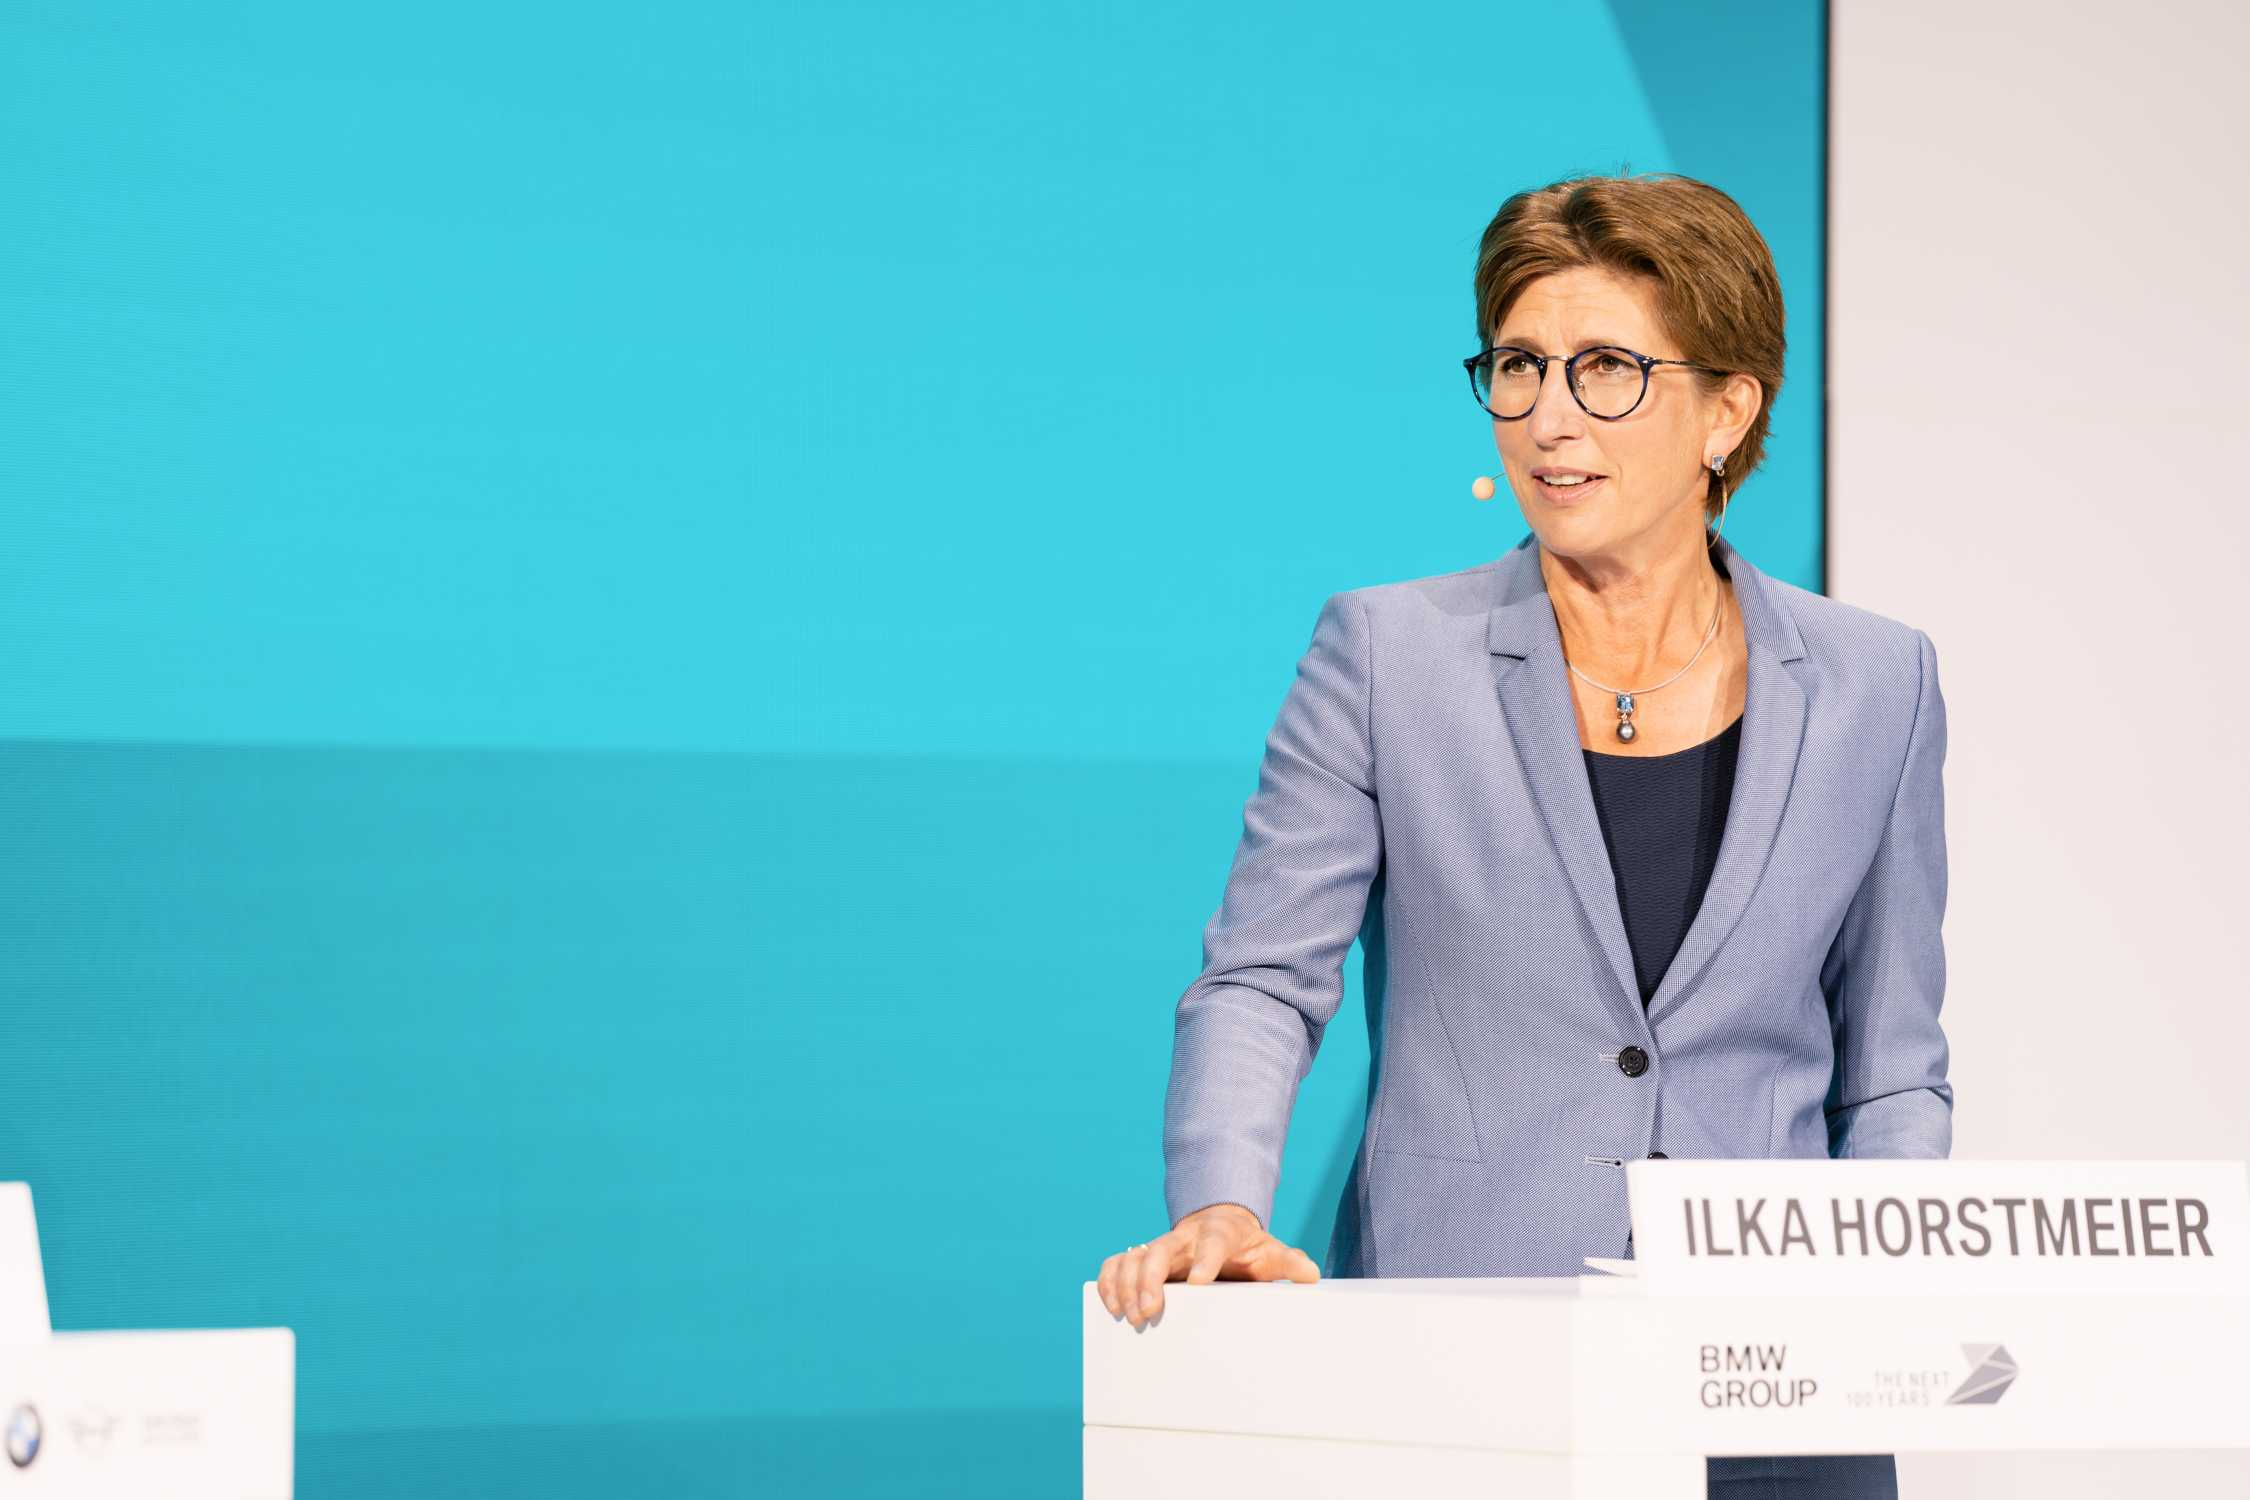 BMW Group FIZ Future: Opening Projekthaus Nord in Munich on 25th September 2020. Ilka Horstmeier, Member of the Board of Management of BMW AG, Human Resources, Labour Relations Director (09/2020).